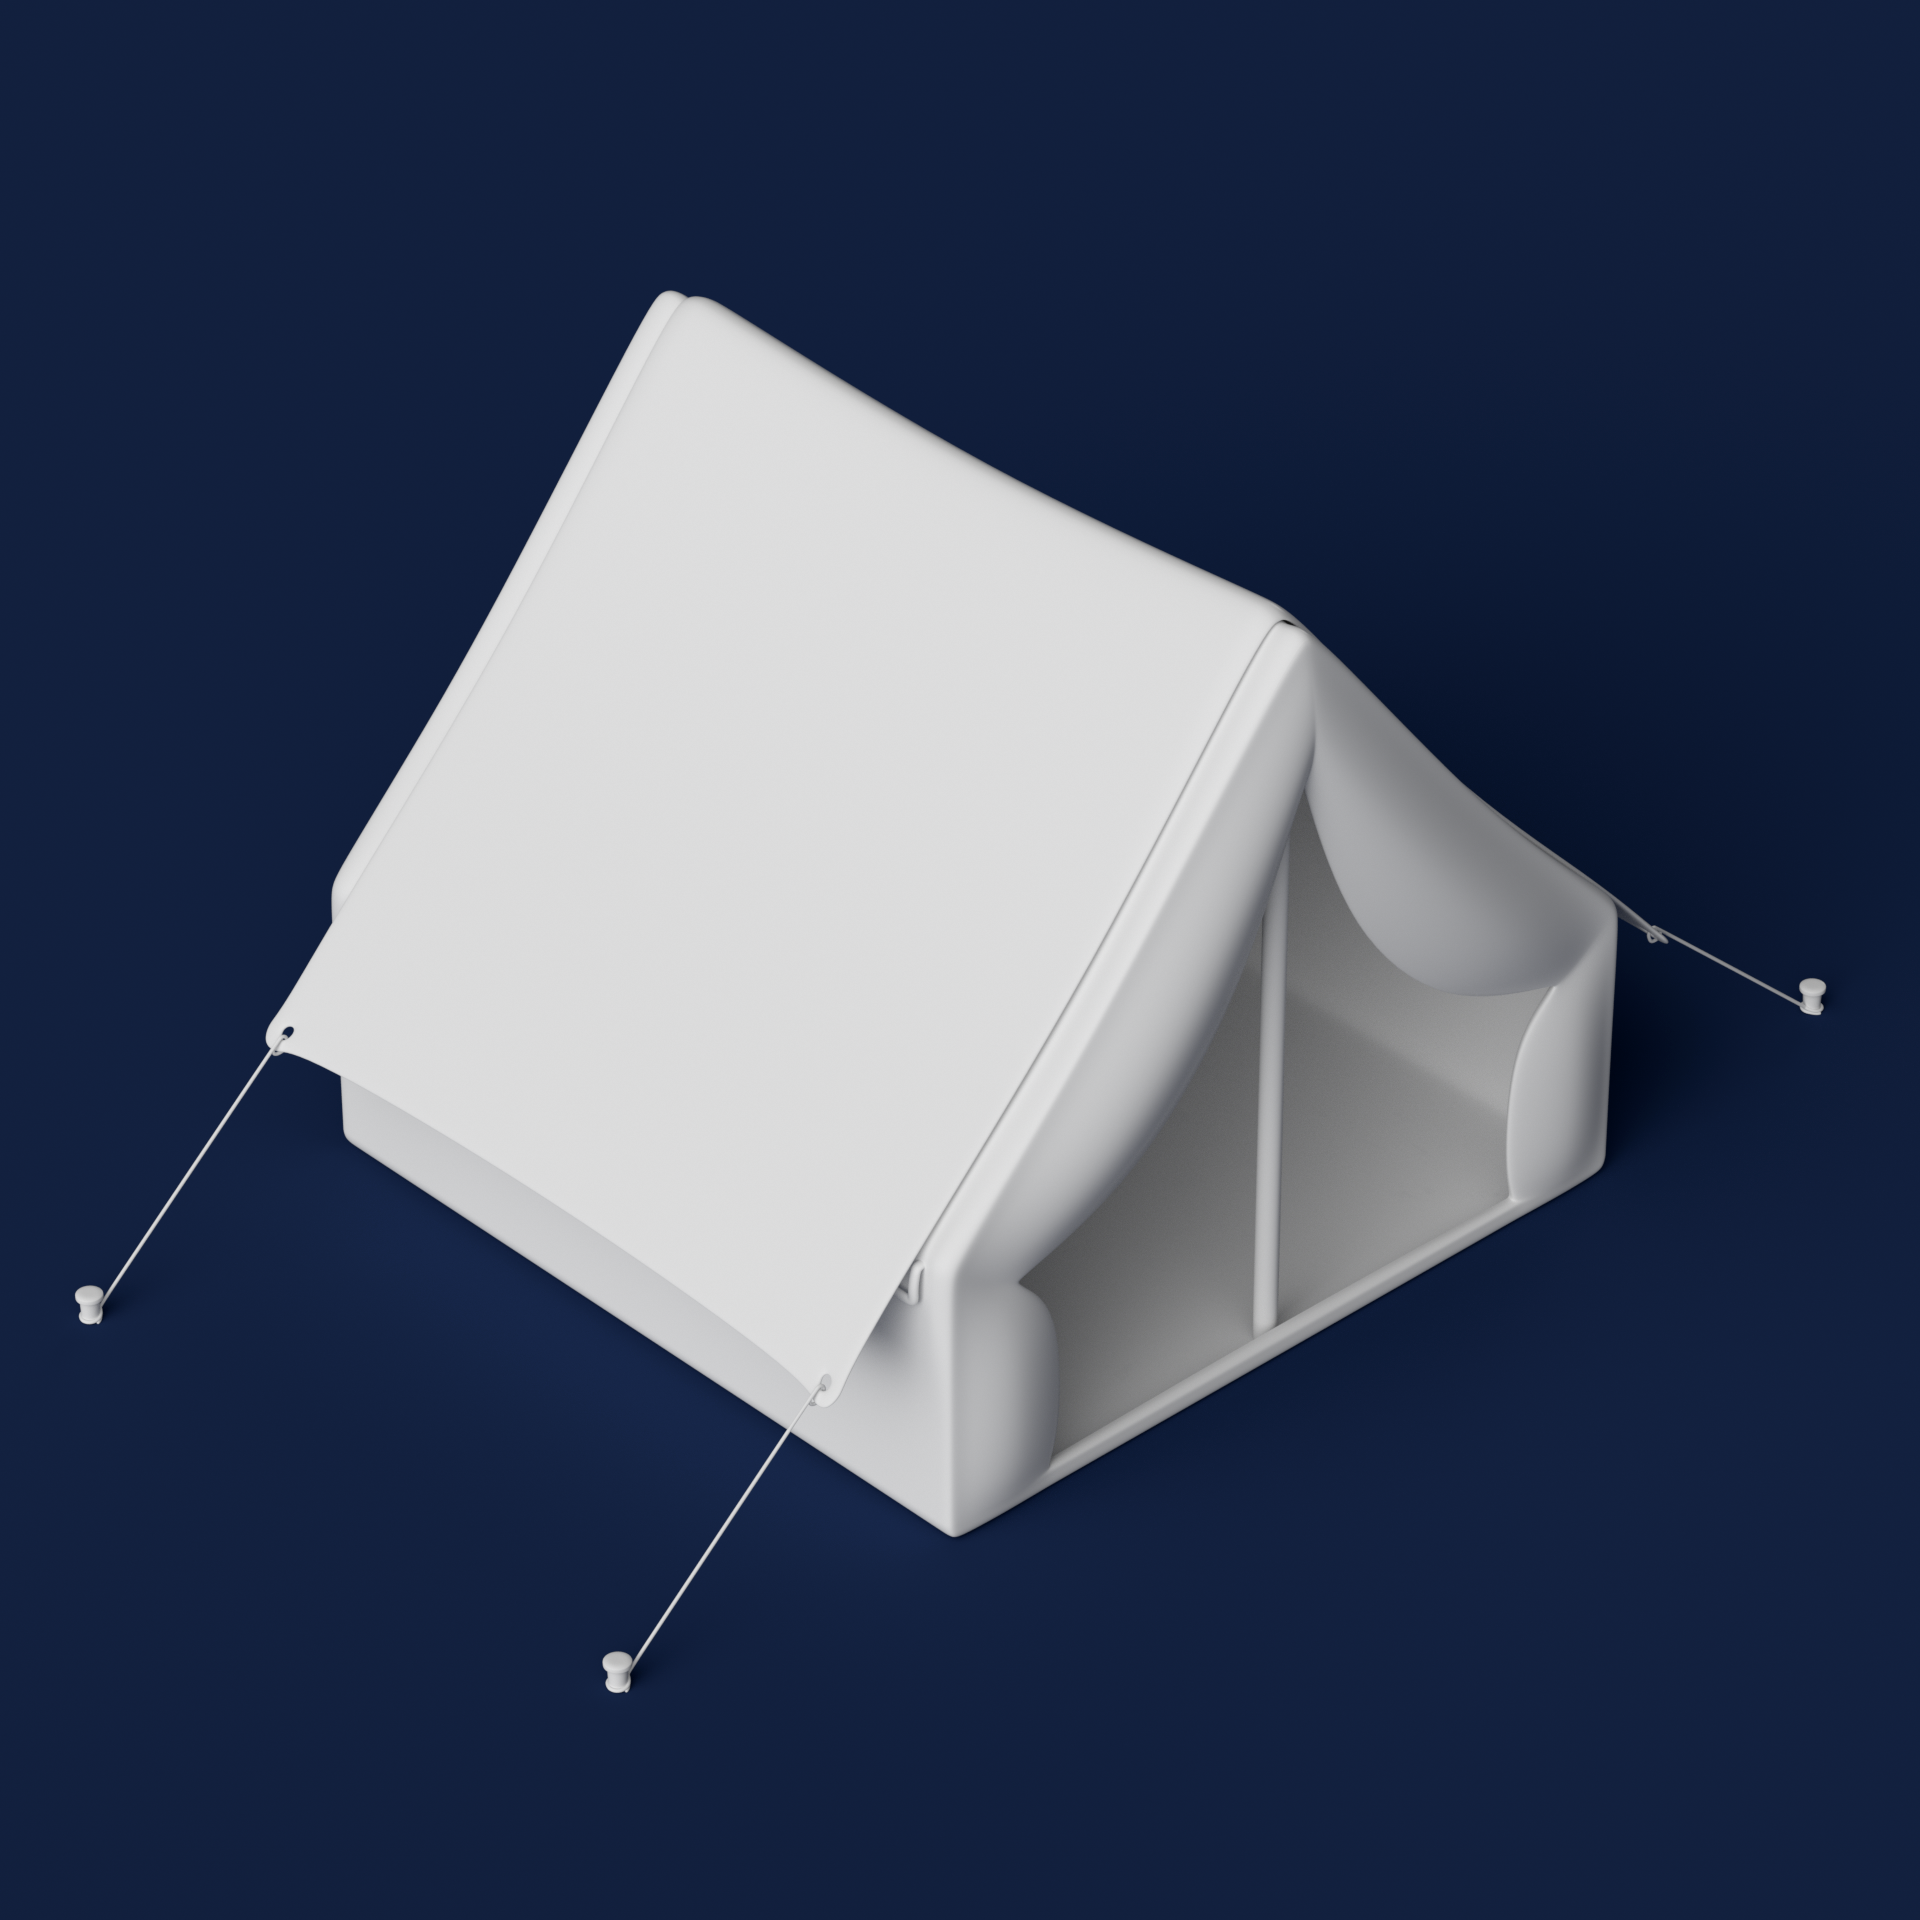 tent_1.png